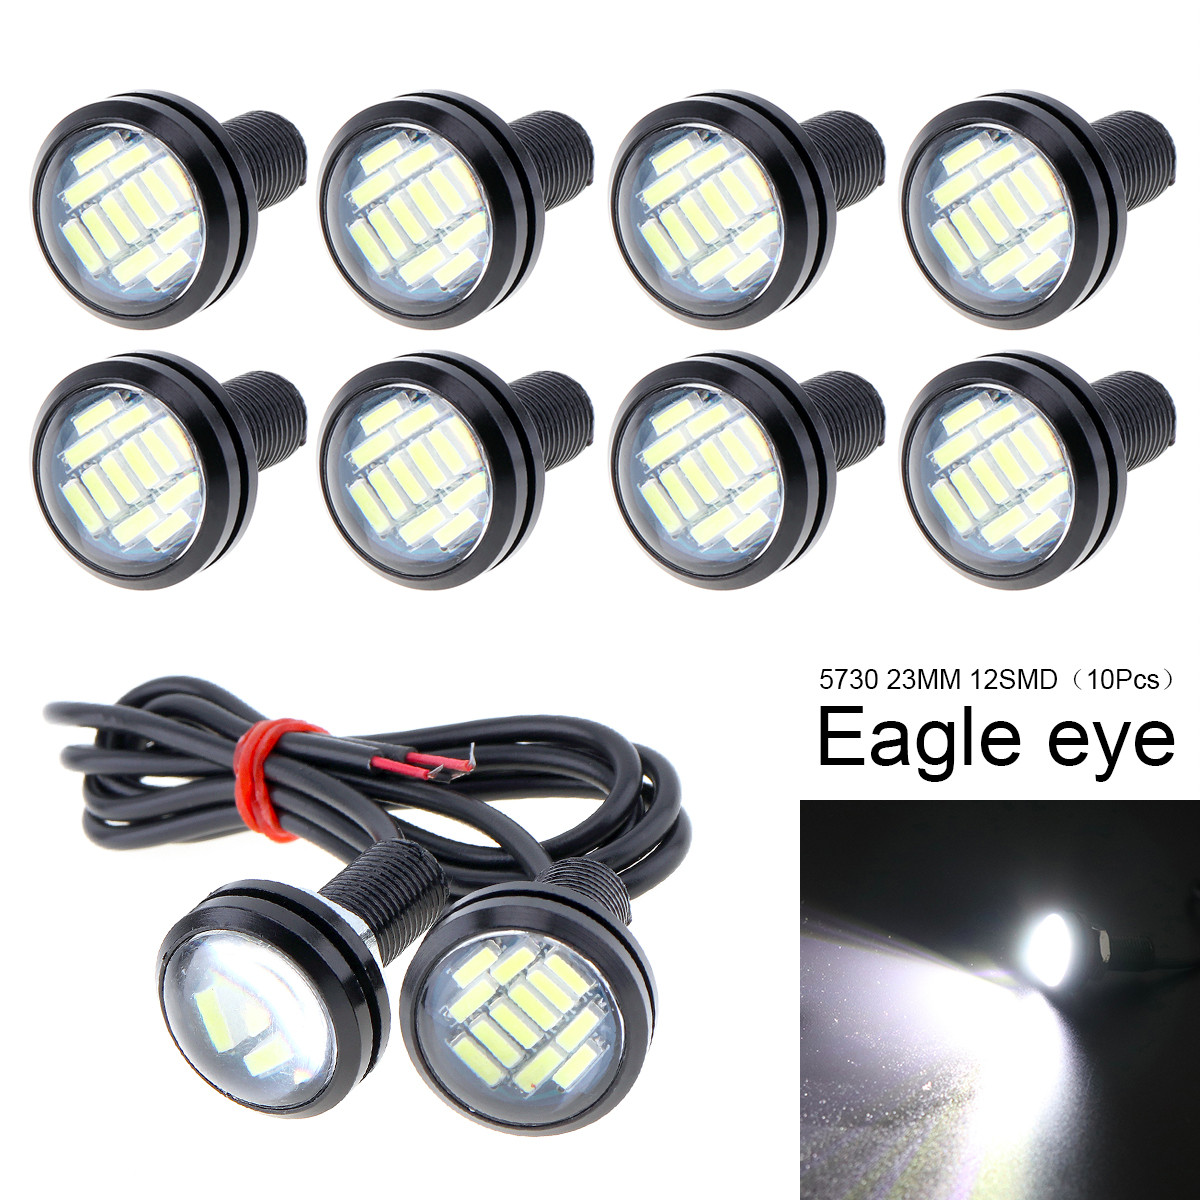 Electric Vehicle Parts 10pcs Waterproof 18mm 9w Cob White Led Eagle Eye Car Fog Drl Turn Signal Light Be Friendly In Use Accessories